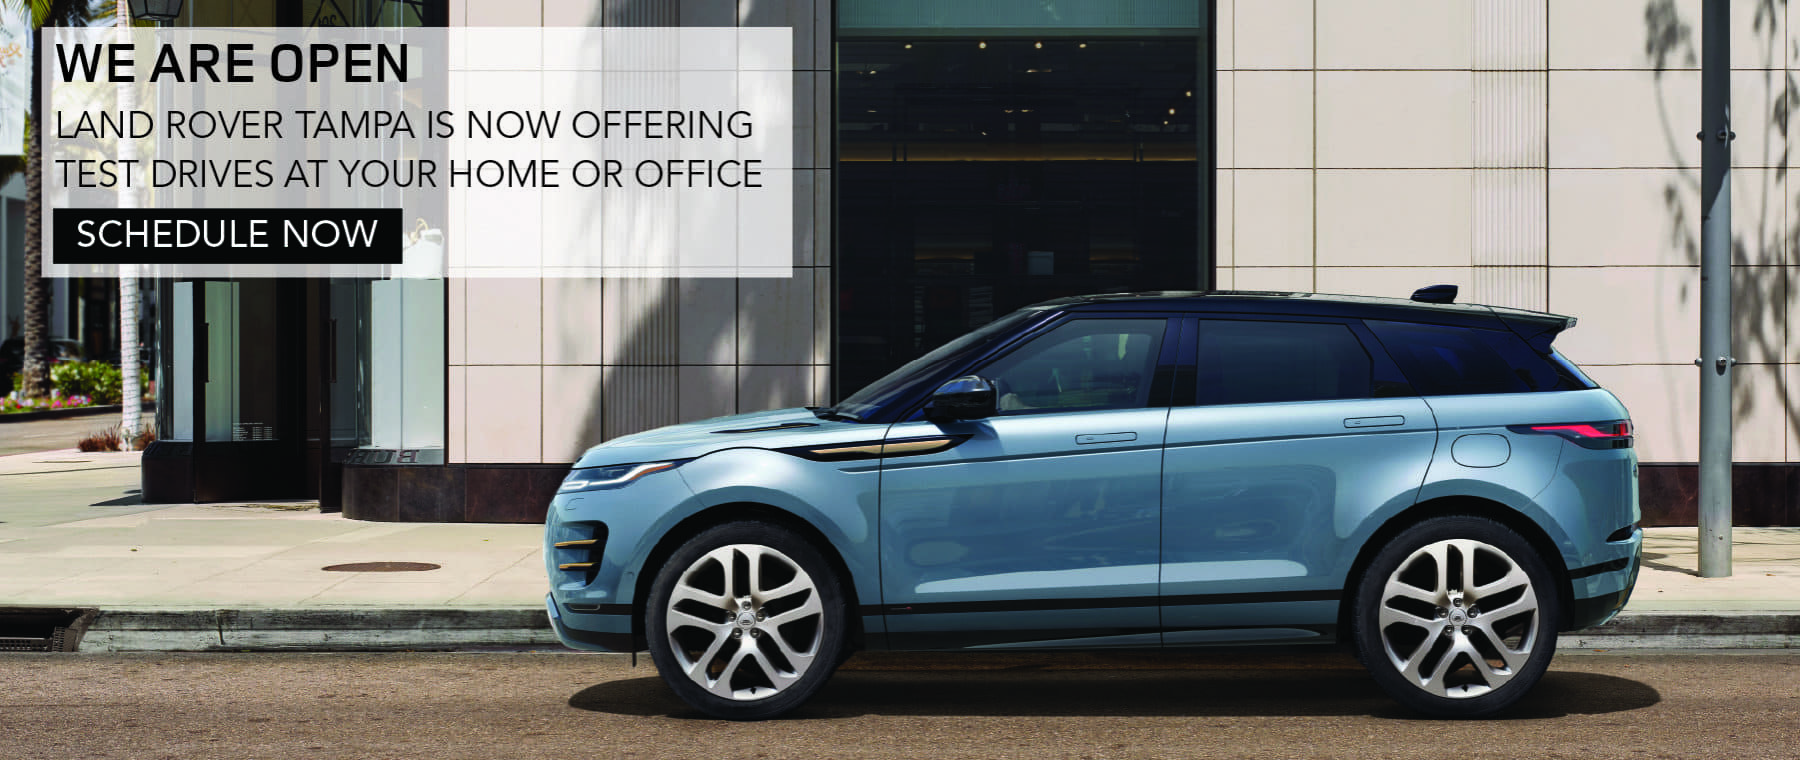 WE ARE OPEN. LAND ROVER TAMPA IS NOW OFFERING TEST DRIVES AT YOUR HOME OR OFFICE. SCHEDULE NOW. LIGHT BLUE RANGE ROVER EVOQUE DRIVING THROUGH CITY.